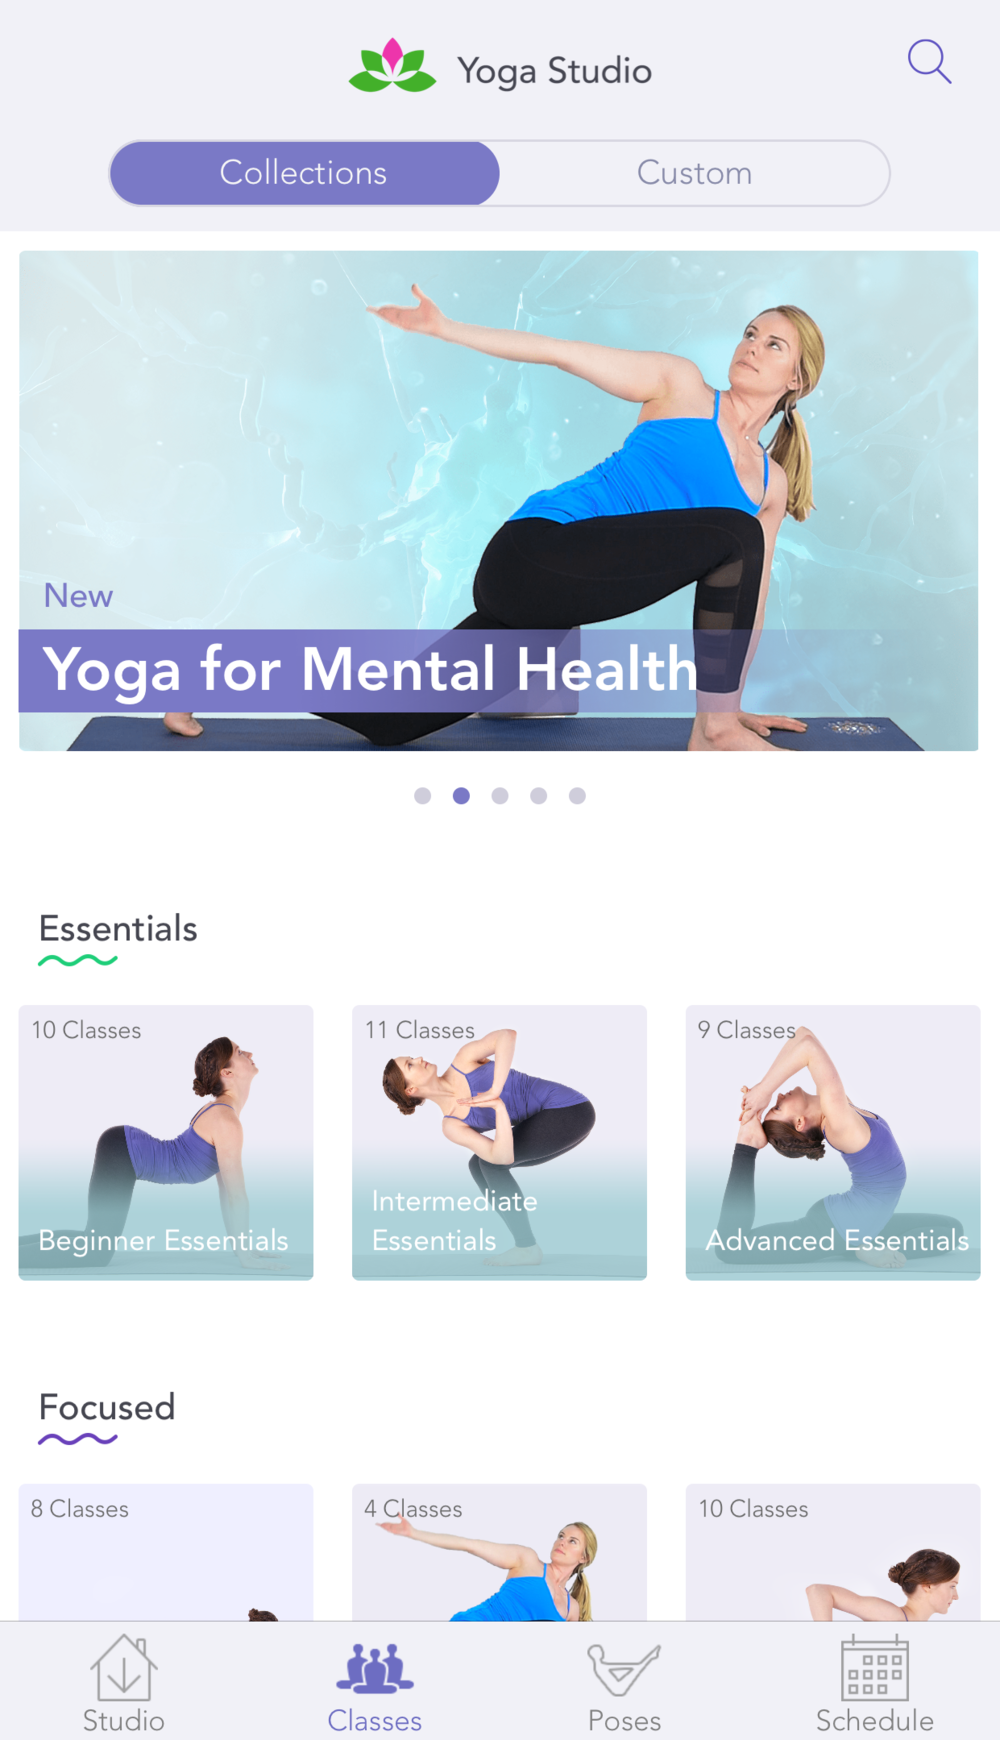 YogaStduio_Collections.png